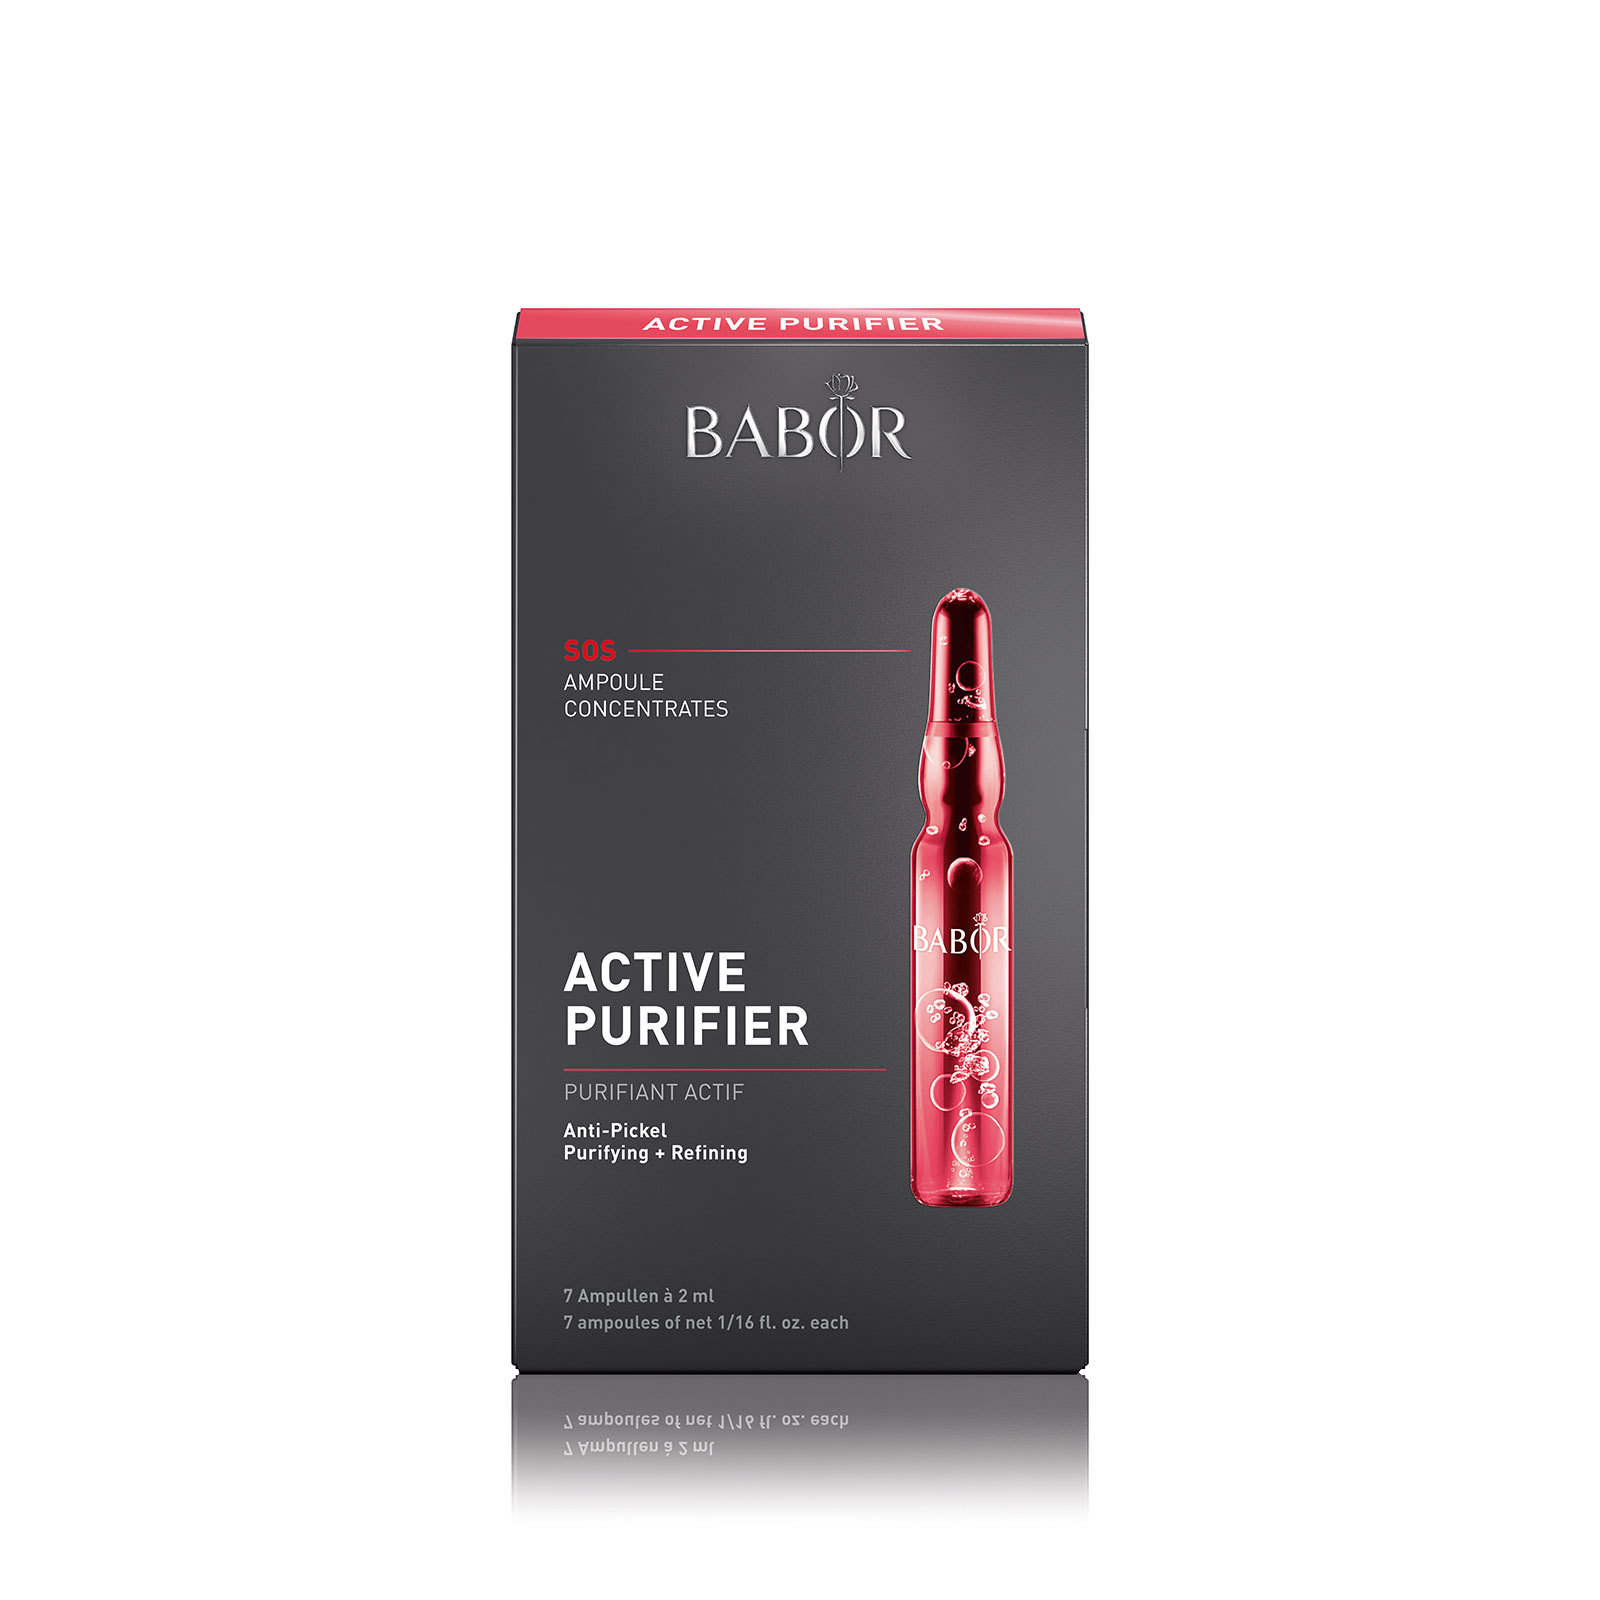 Ампула Babor Active Purifier 1 шт